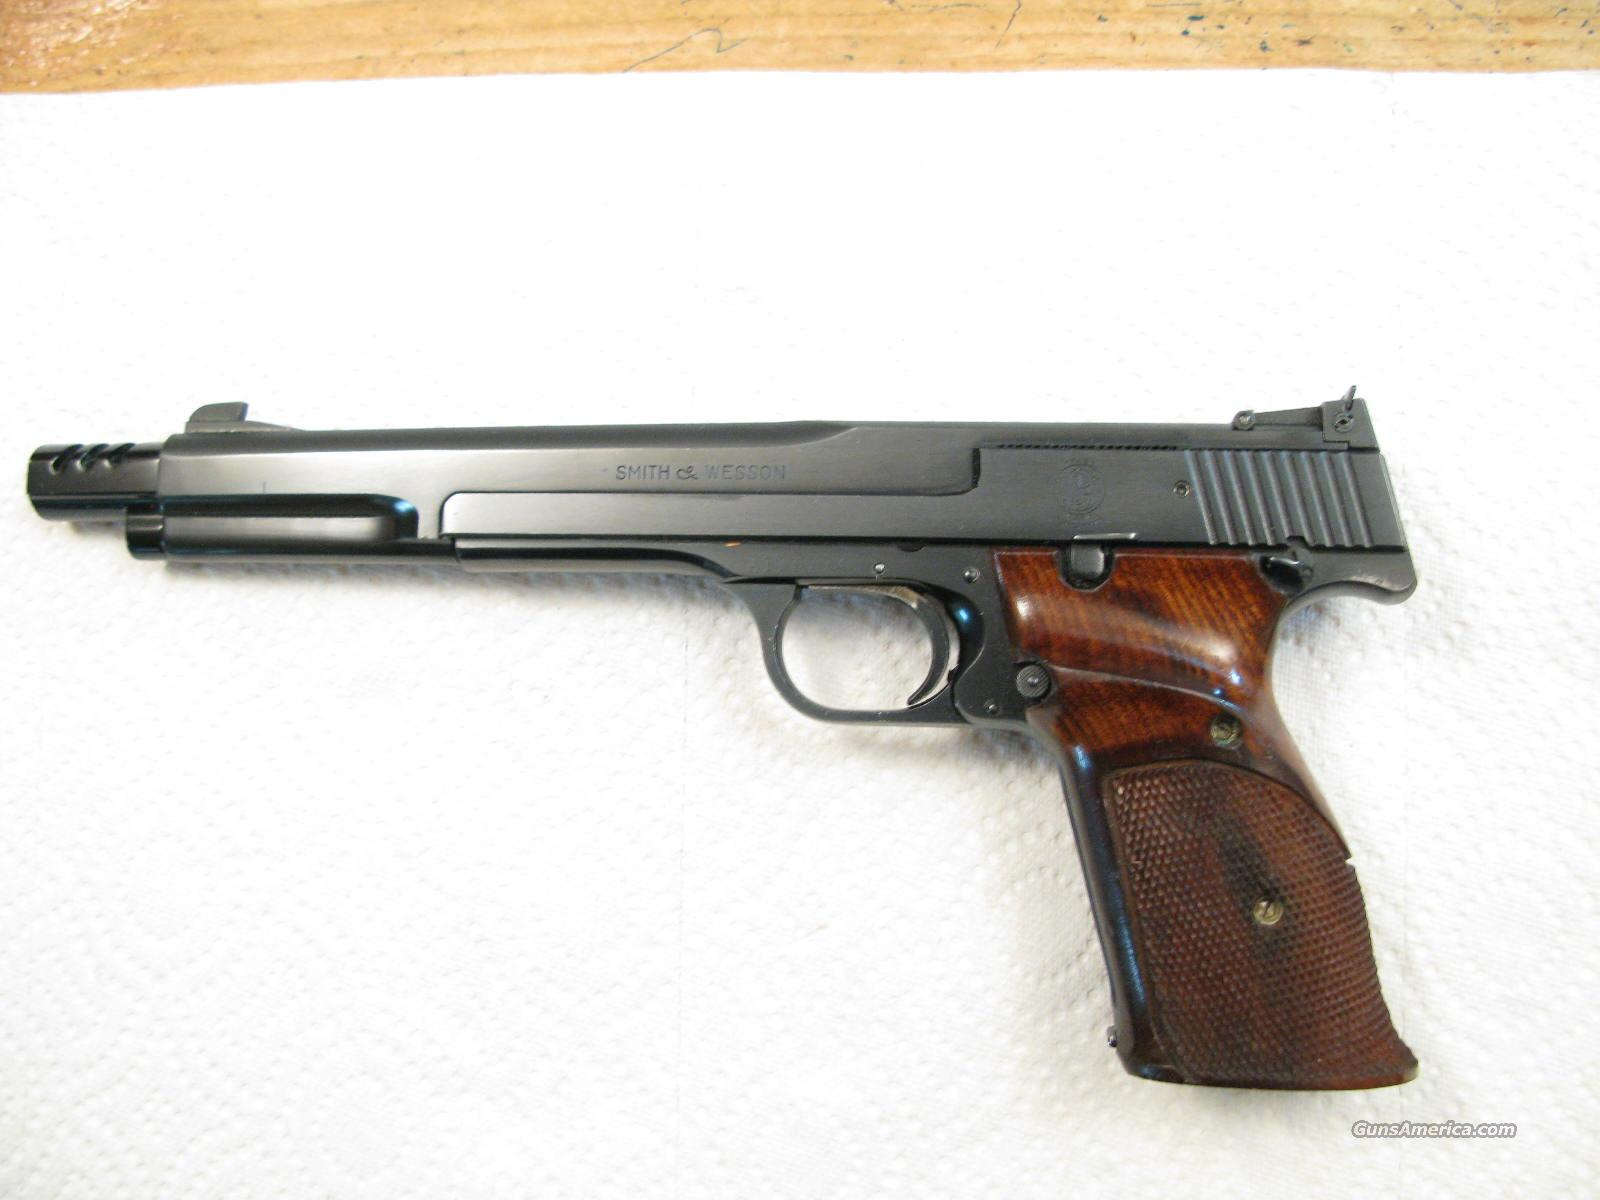 "M-41 7 3/8"" .22 LR Early Target Pistol With Muzzle Brake  Guns > Pistols > Smith & Wesson Pistols - Autos > .22 Autos"